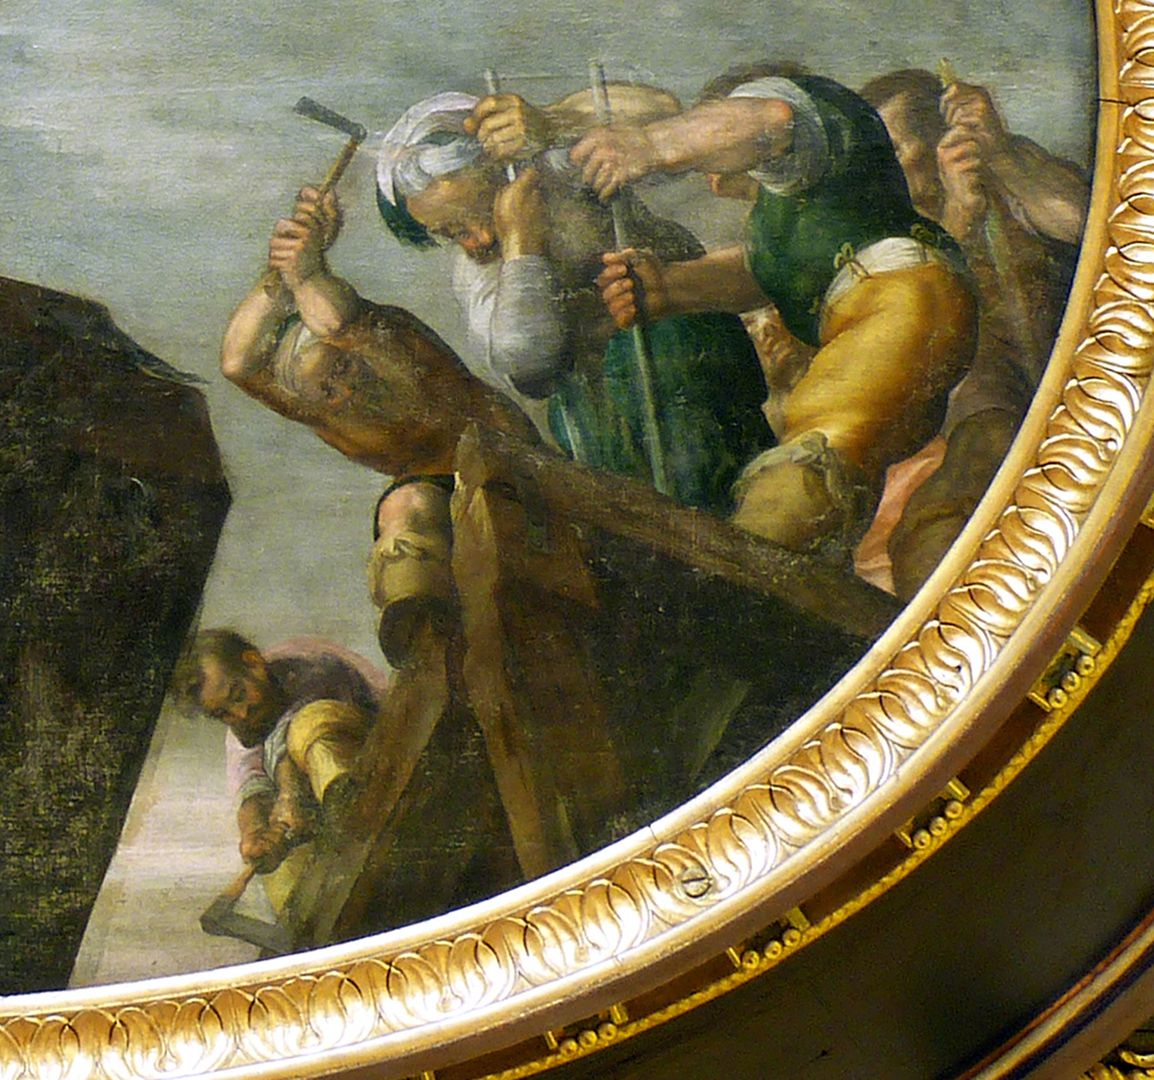 Ceiling painting in the small hall of the City Hall Demolition of the Tiber bridge by Horatius Cocles, detail with Horatius Cocles